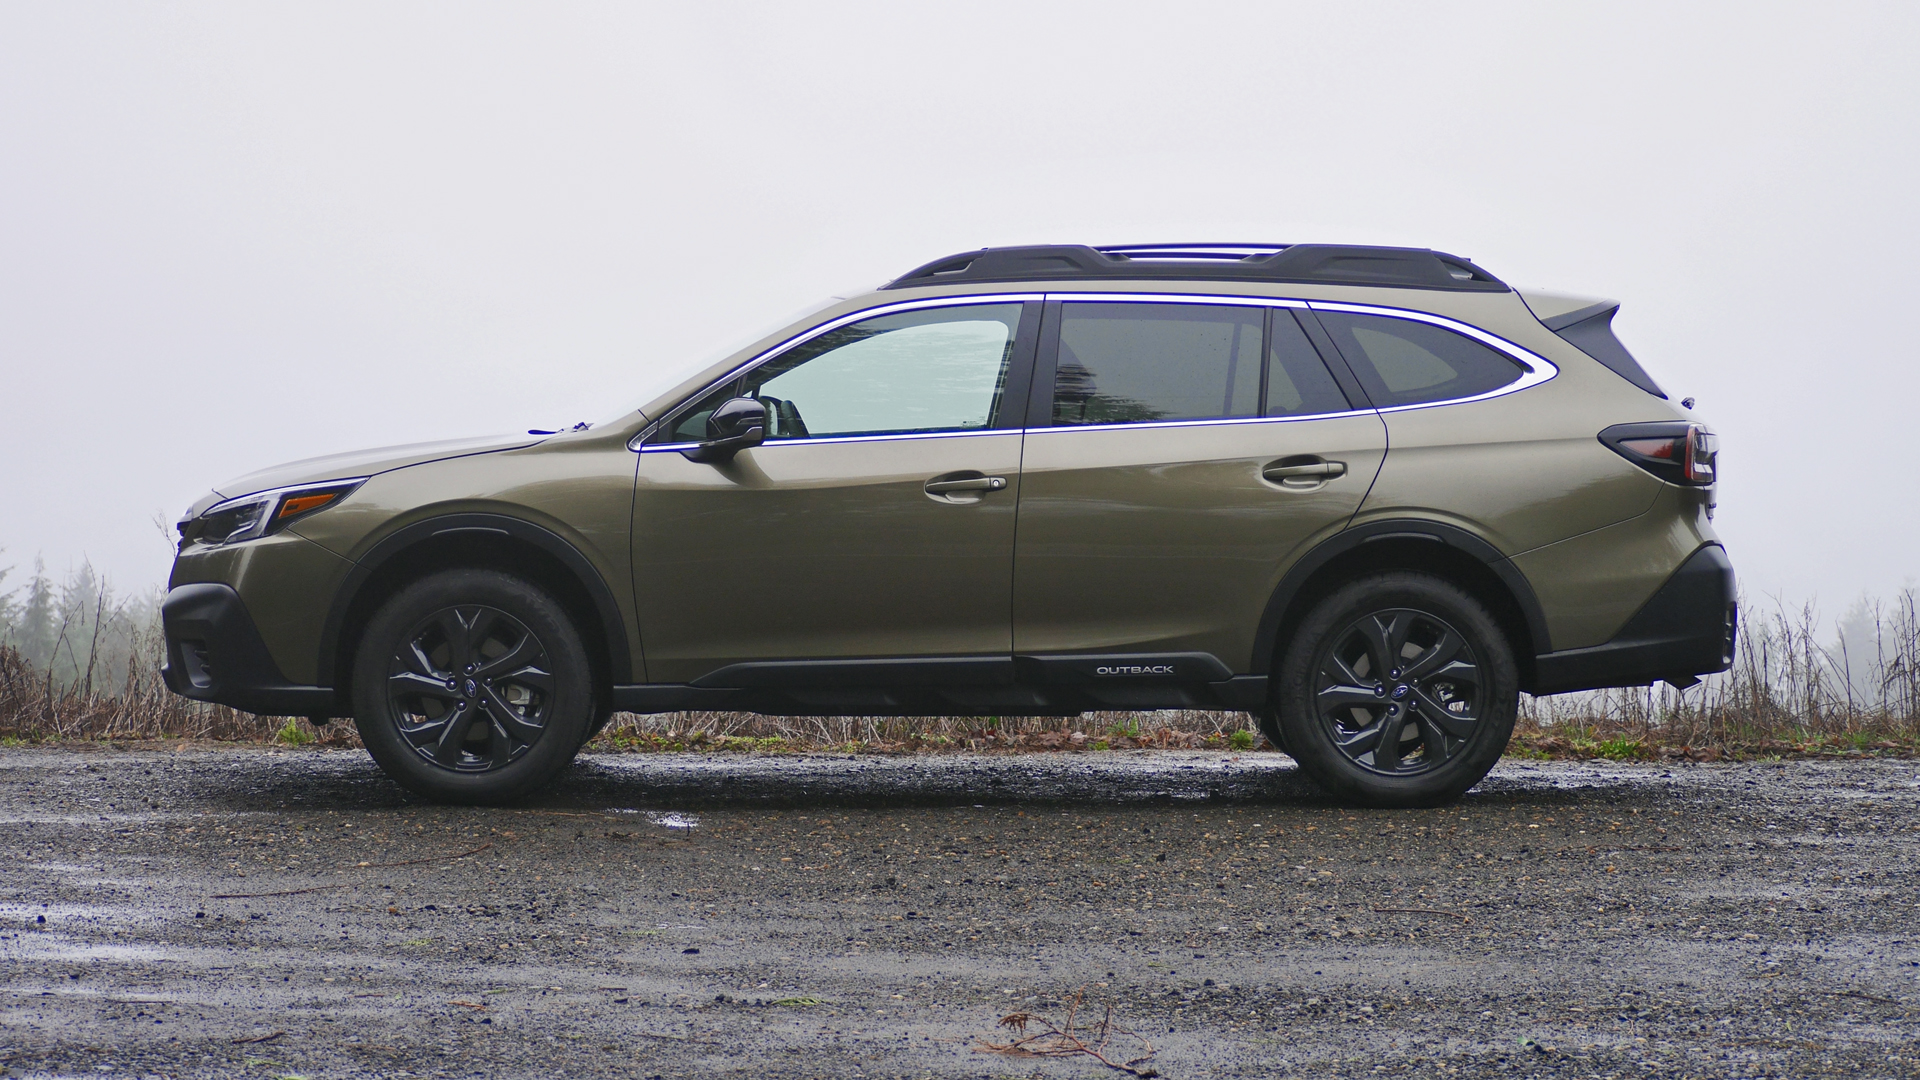 2021 subaru outback review   price, features, specs and